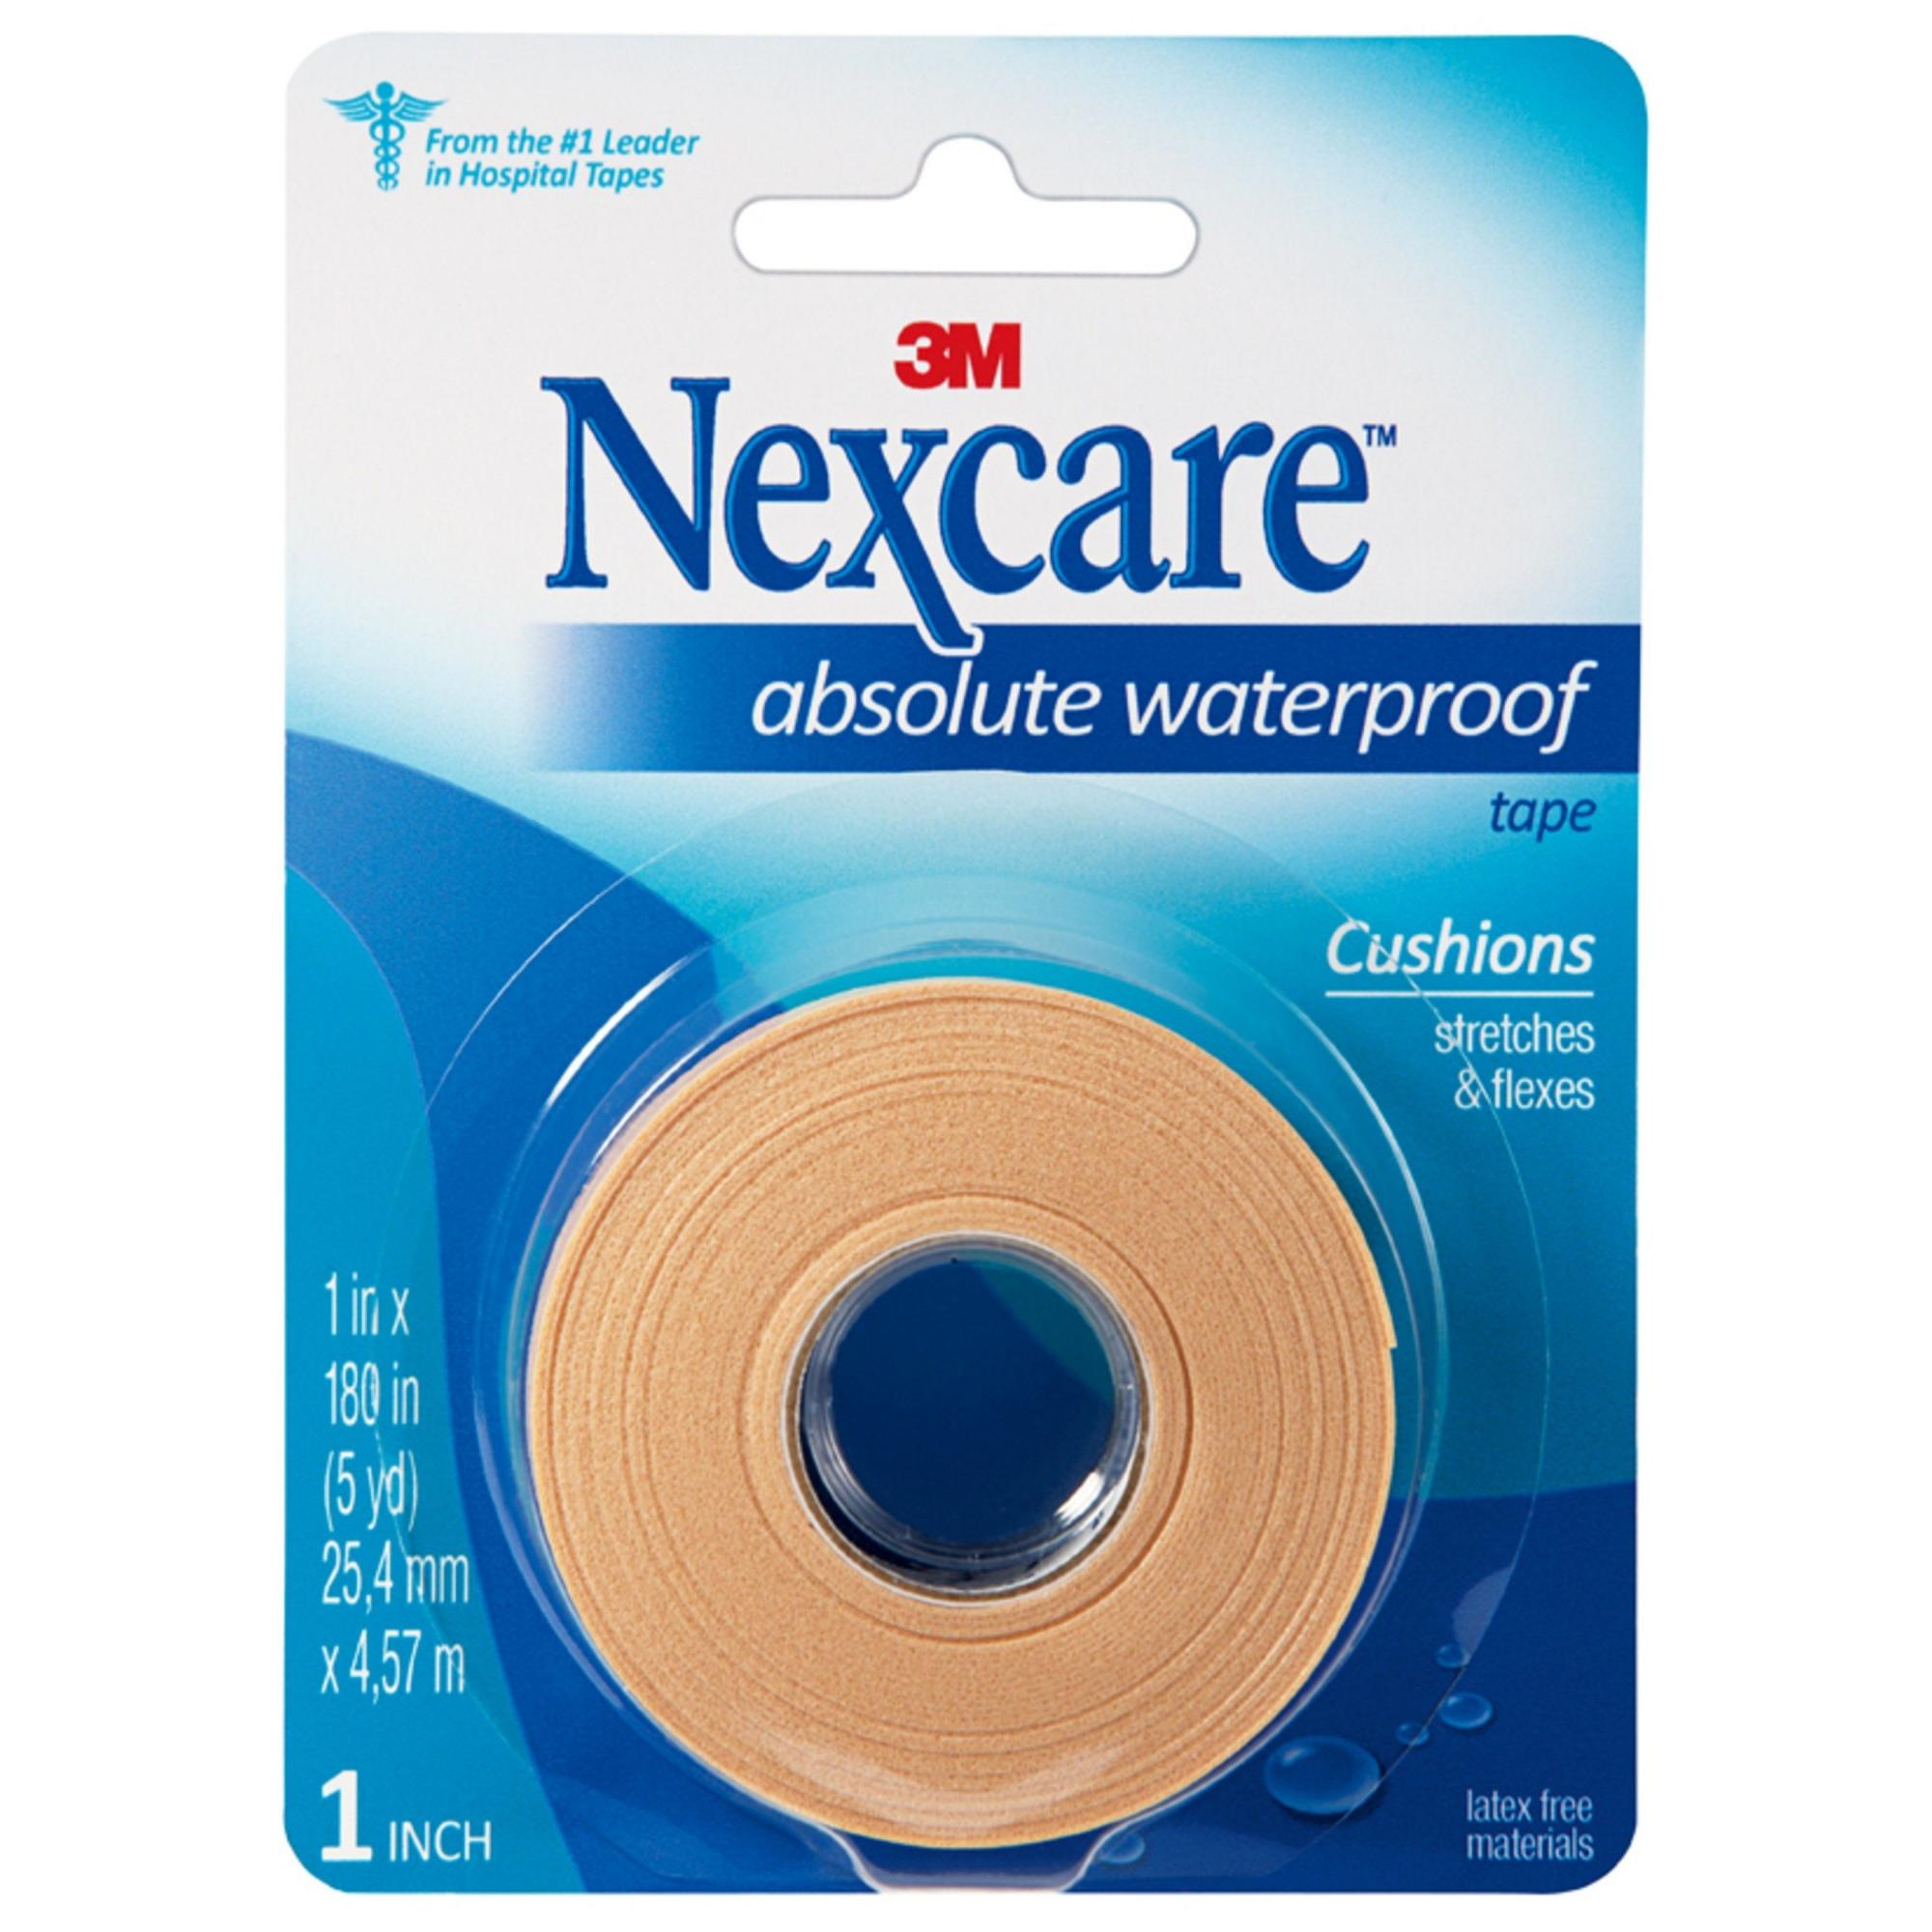 Nexcare Absolute Waterproof First Aid Tape, 1 in x 5 yds